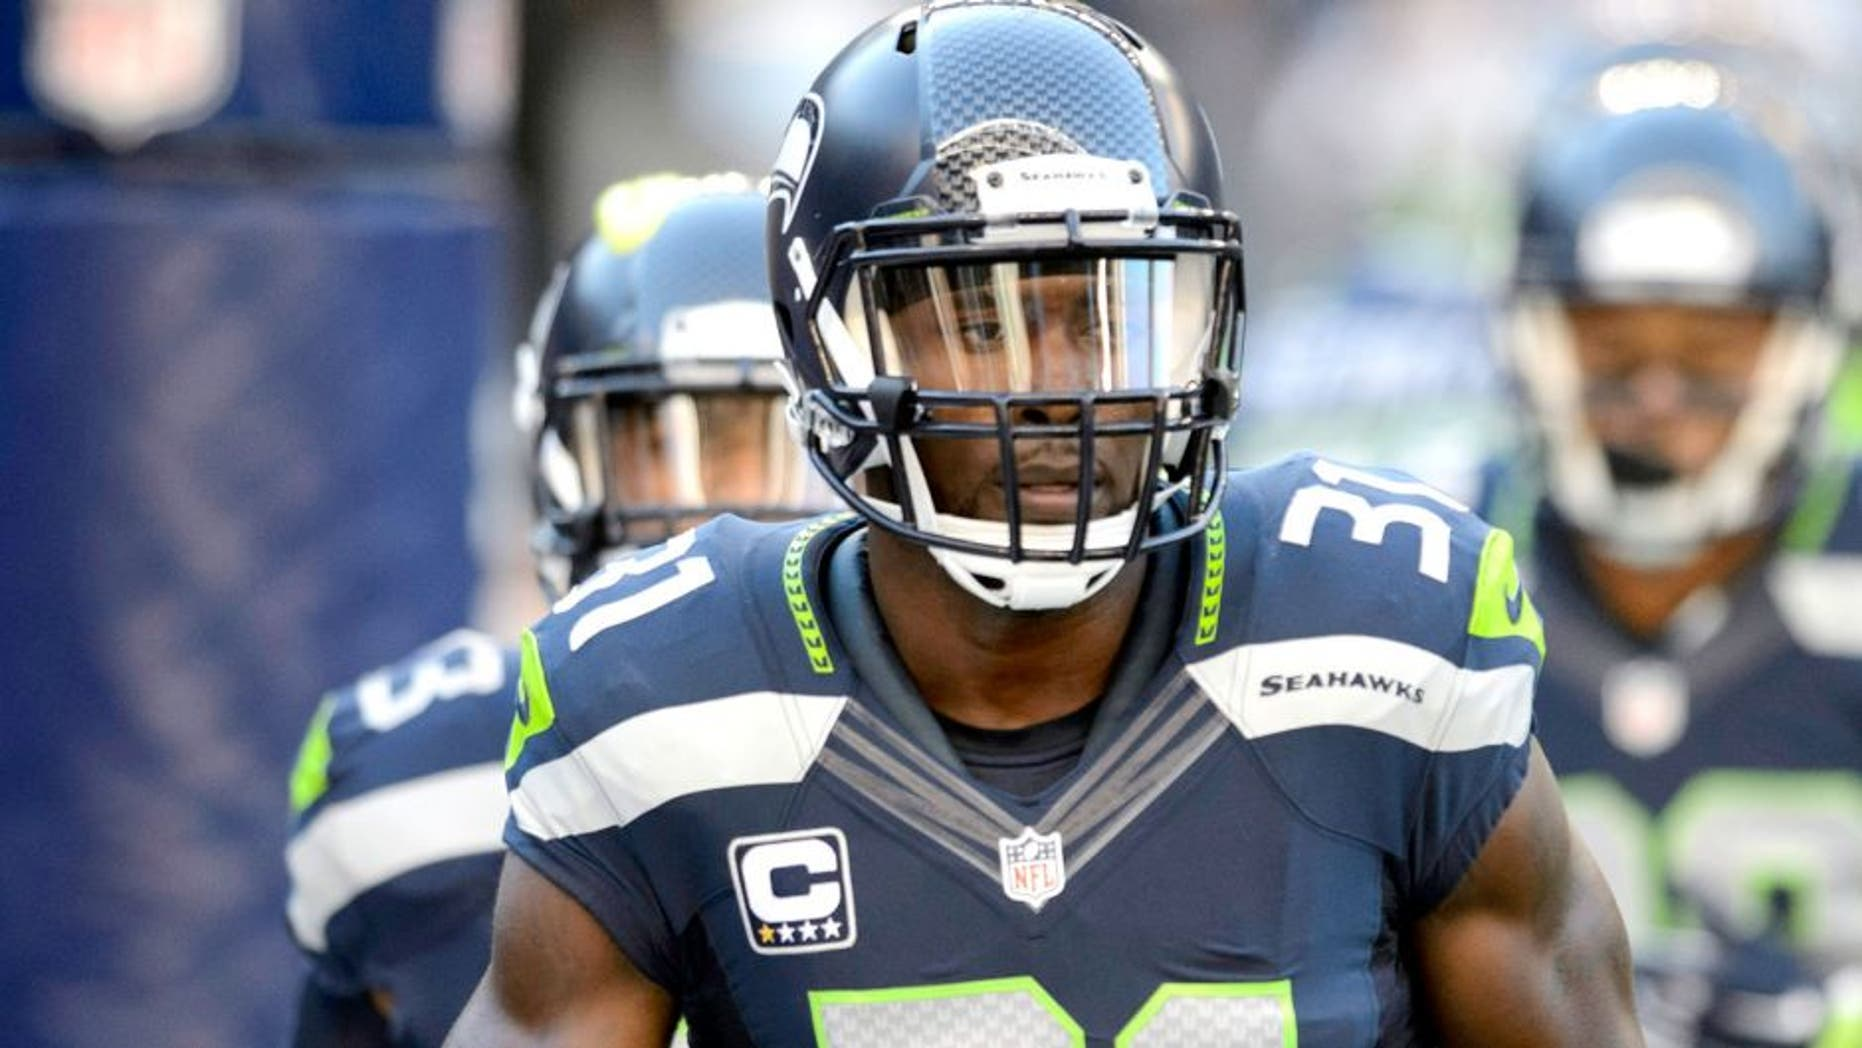 Sep 4, 2014; Seattle, WA, USA; Seattle Seahawks strong safety Kam Chancellor (31) during pre game warm ups prior to the game against the Green Bay Packers at CenturyLink Field. Mandatory Credit: Steven Bisig-USA TODAY Sports